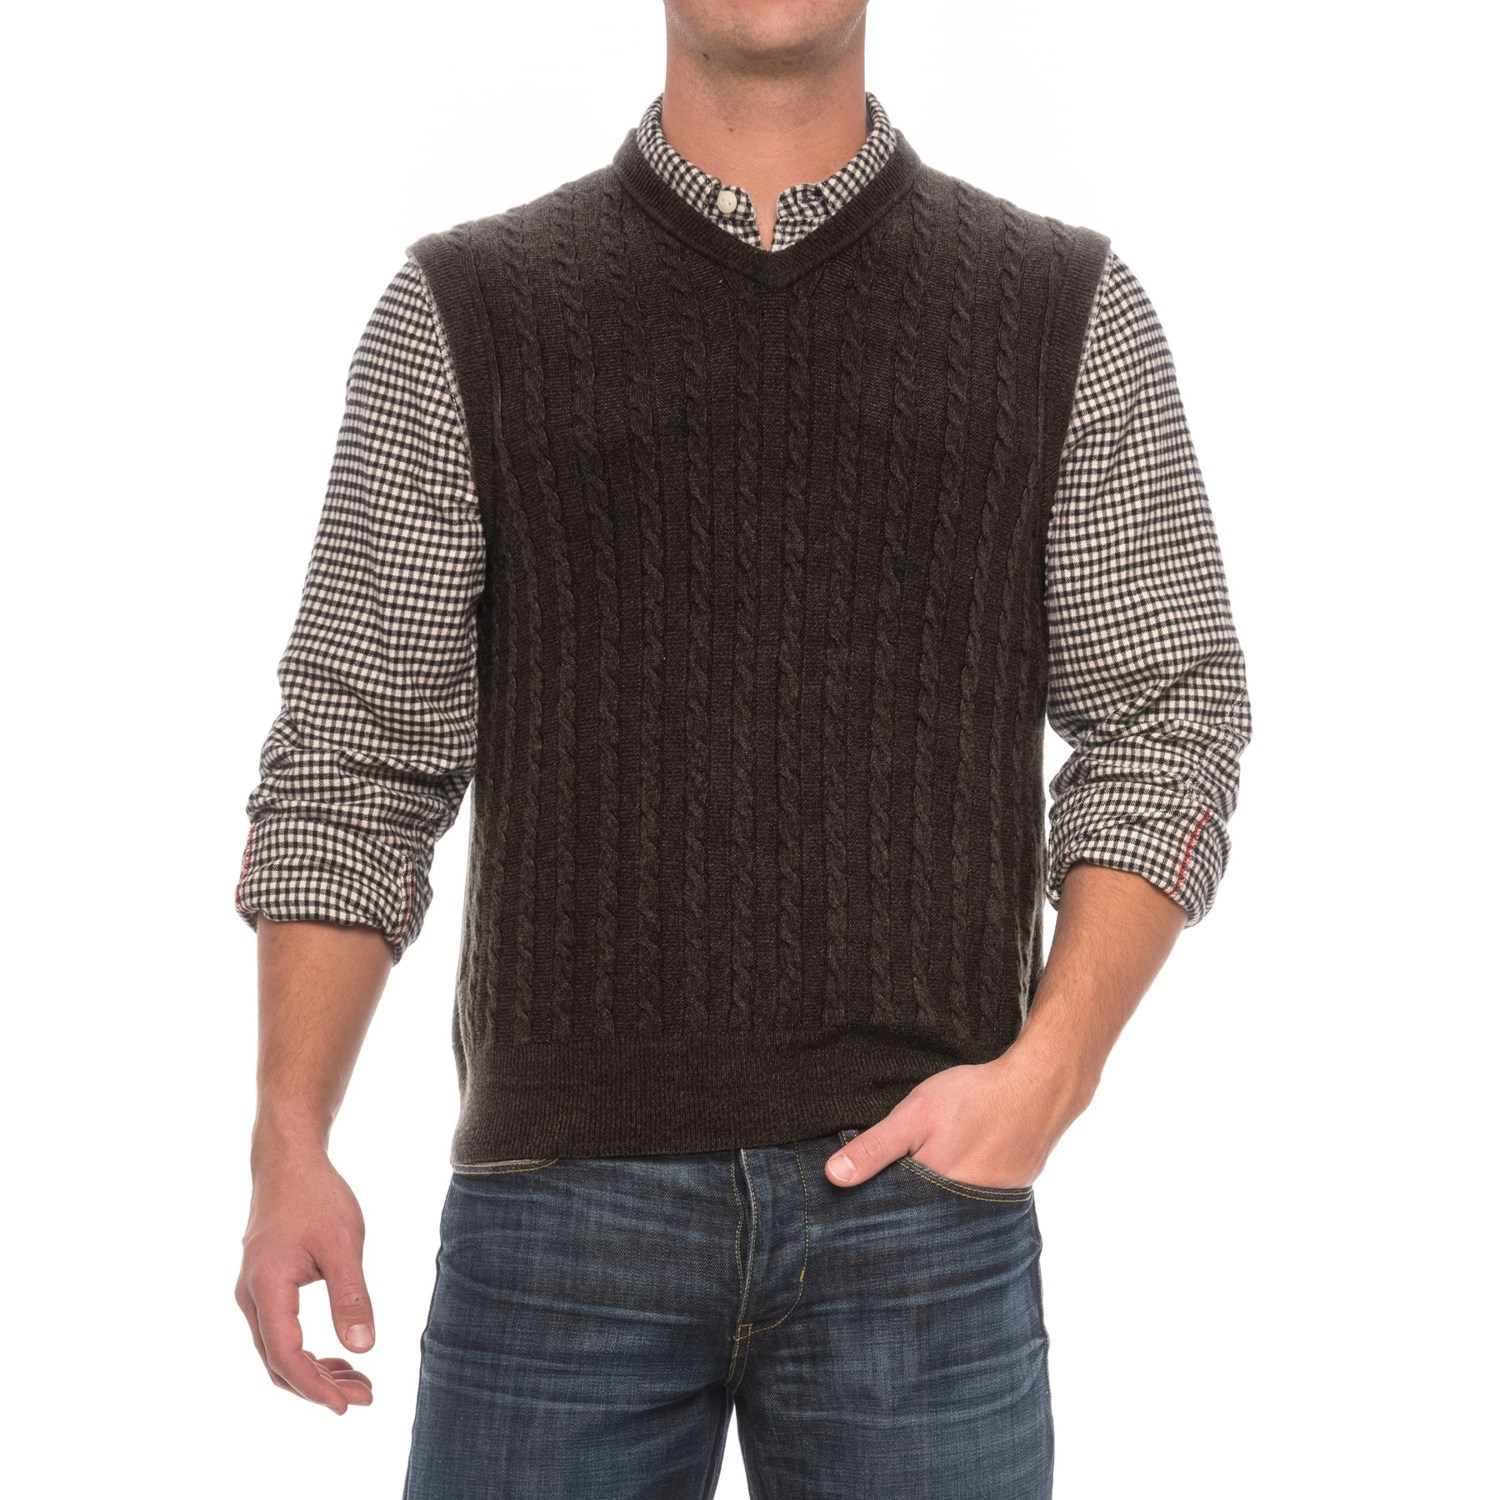 Free shipping BOTH ways on fred perry cable knit sweater vest, from our vast selection of styles. Fast delivery, and 24/7/ real-person service with a smile. Click or call